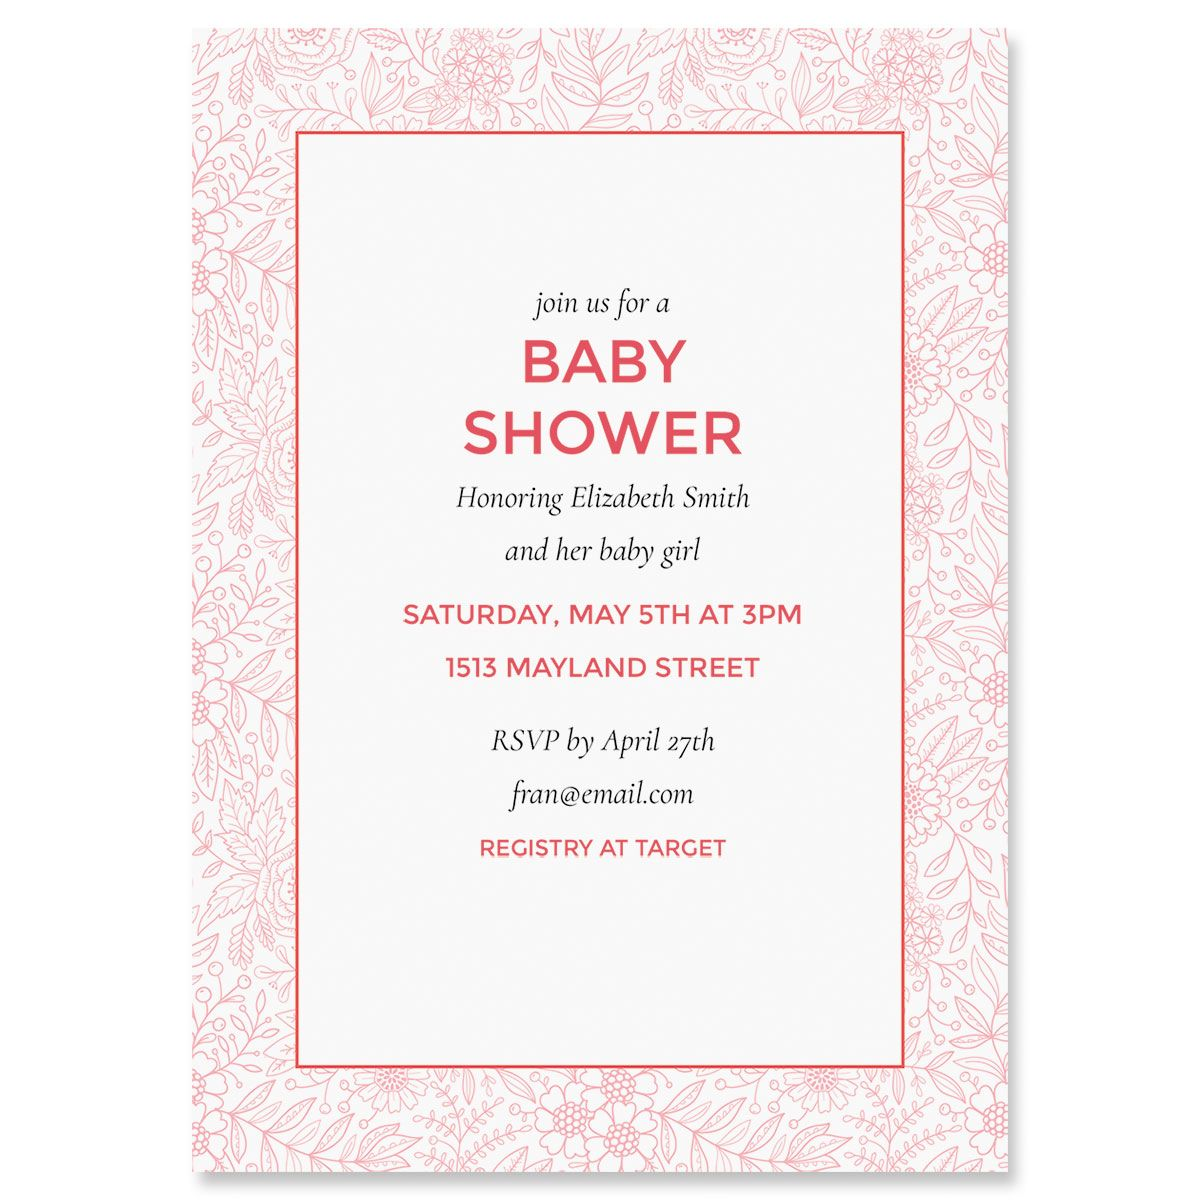 Personalized Red Floral Frame Shower Invitations